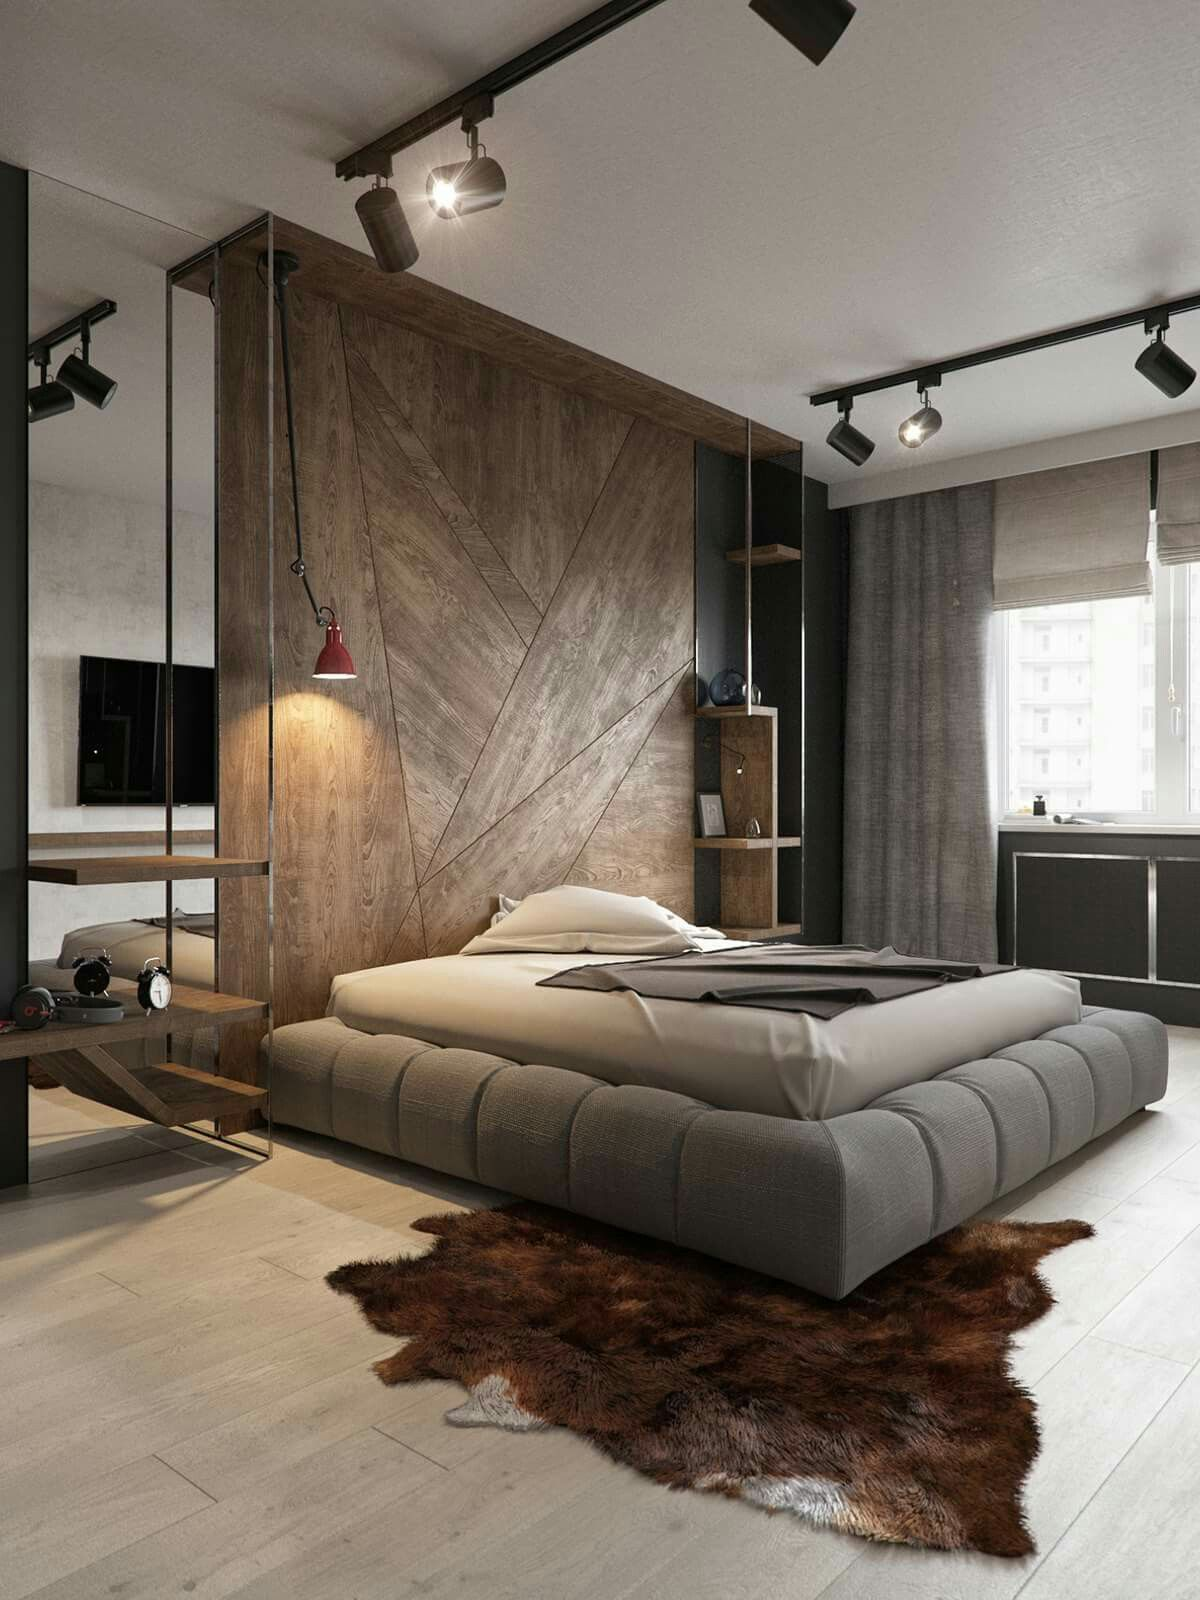 Partitioned Bedroom The Headboard Or Room Partition In This Loft Is Quite